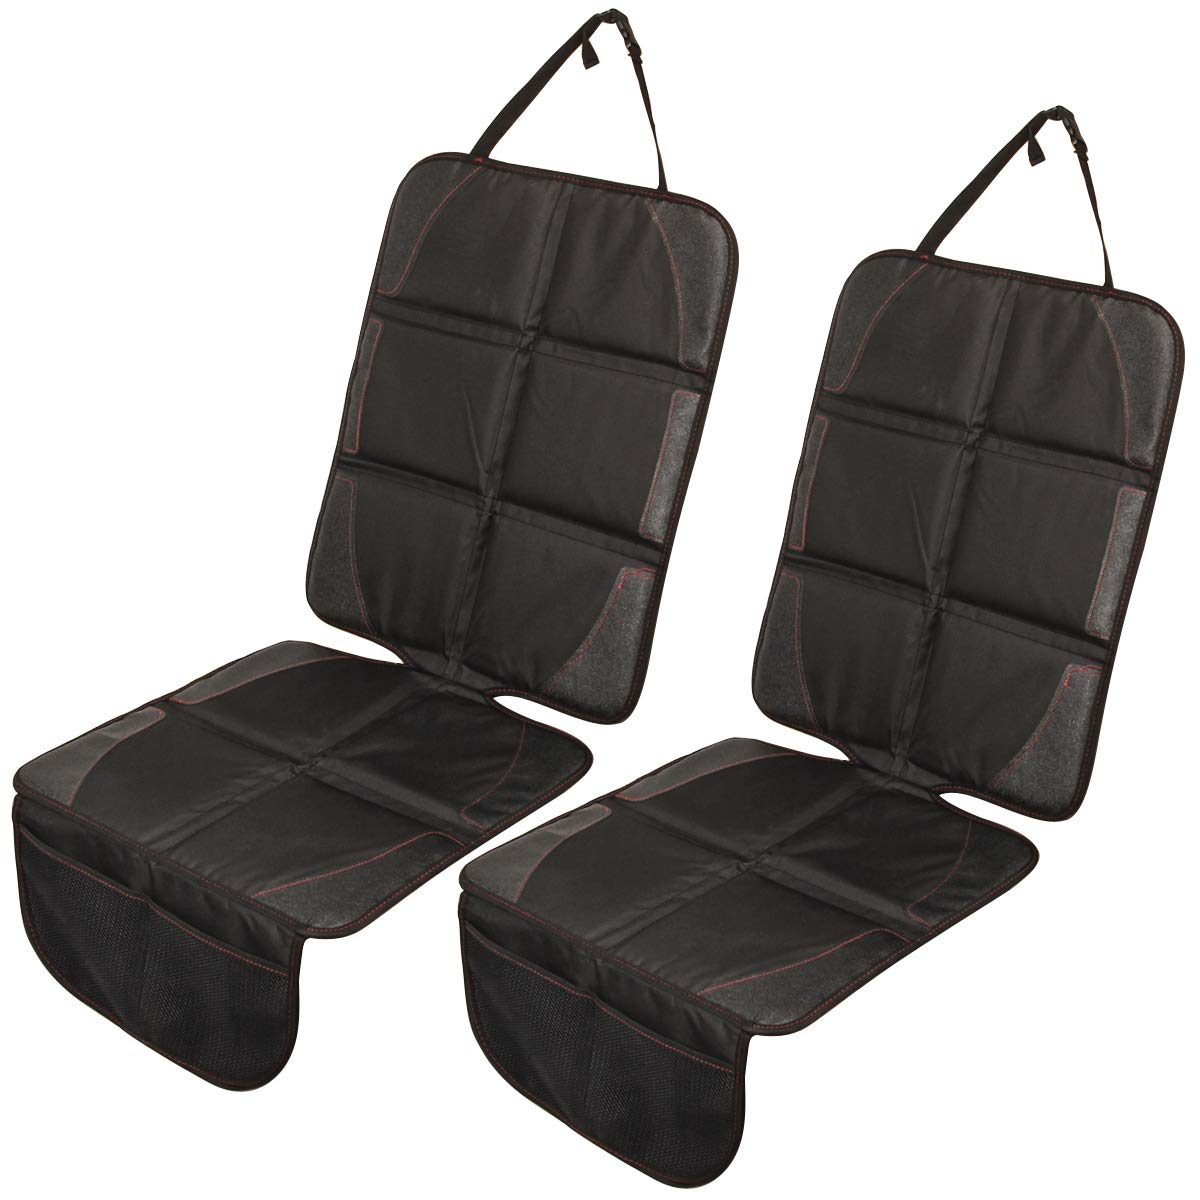 Car Seat Protector for Baby Child Car Seats Safety Anti-Slip Auto Seat Cover Mat to use Under Baby Infant Carseats Protect Vehicle Leather Cloth Upholstery with Organizer (1 Pack) KING SHOWDEN